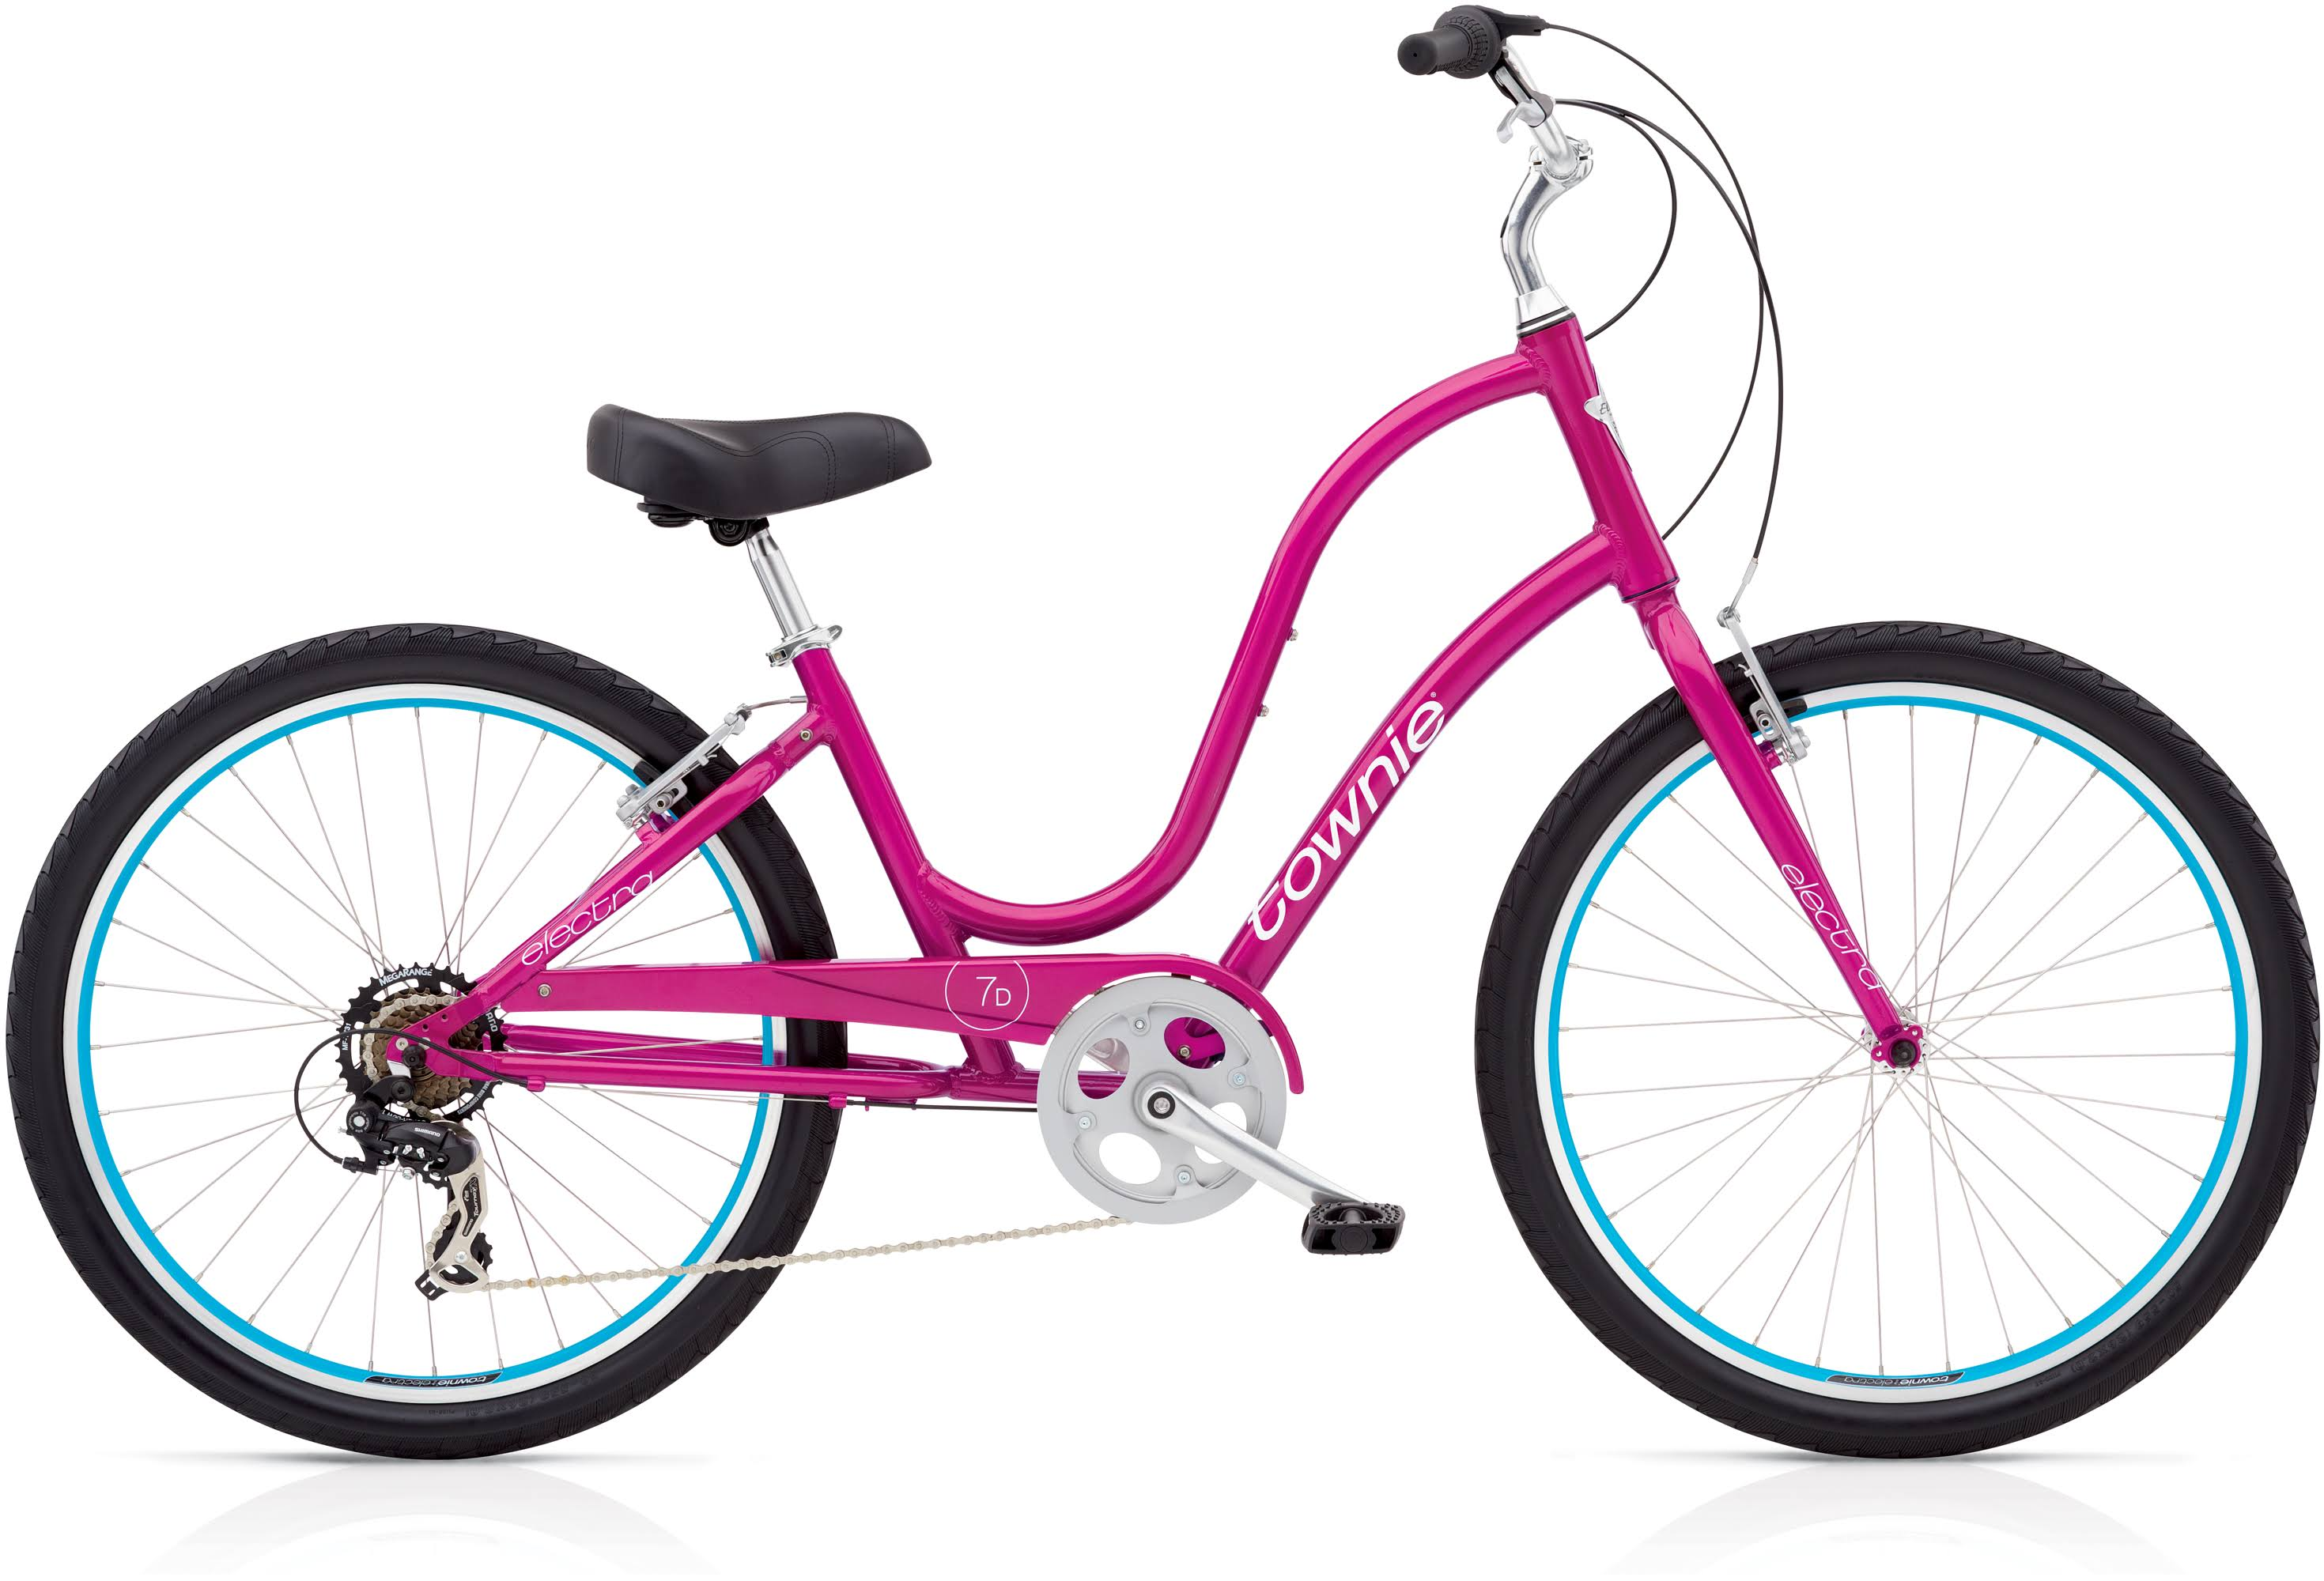 Electra Women's Townie 7D Step Through Bike